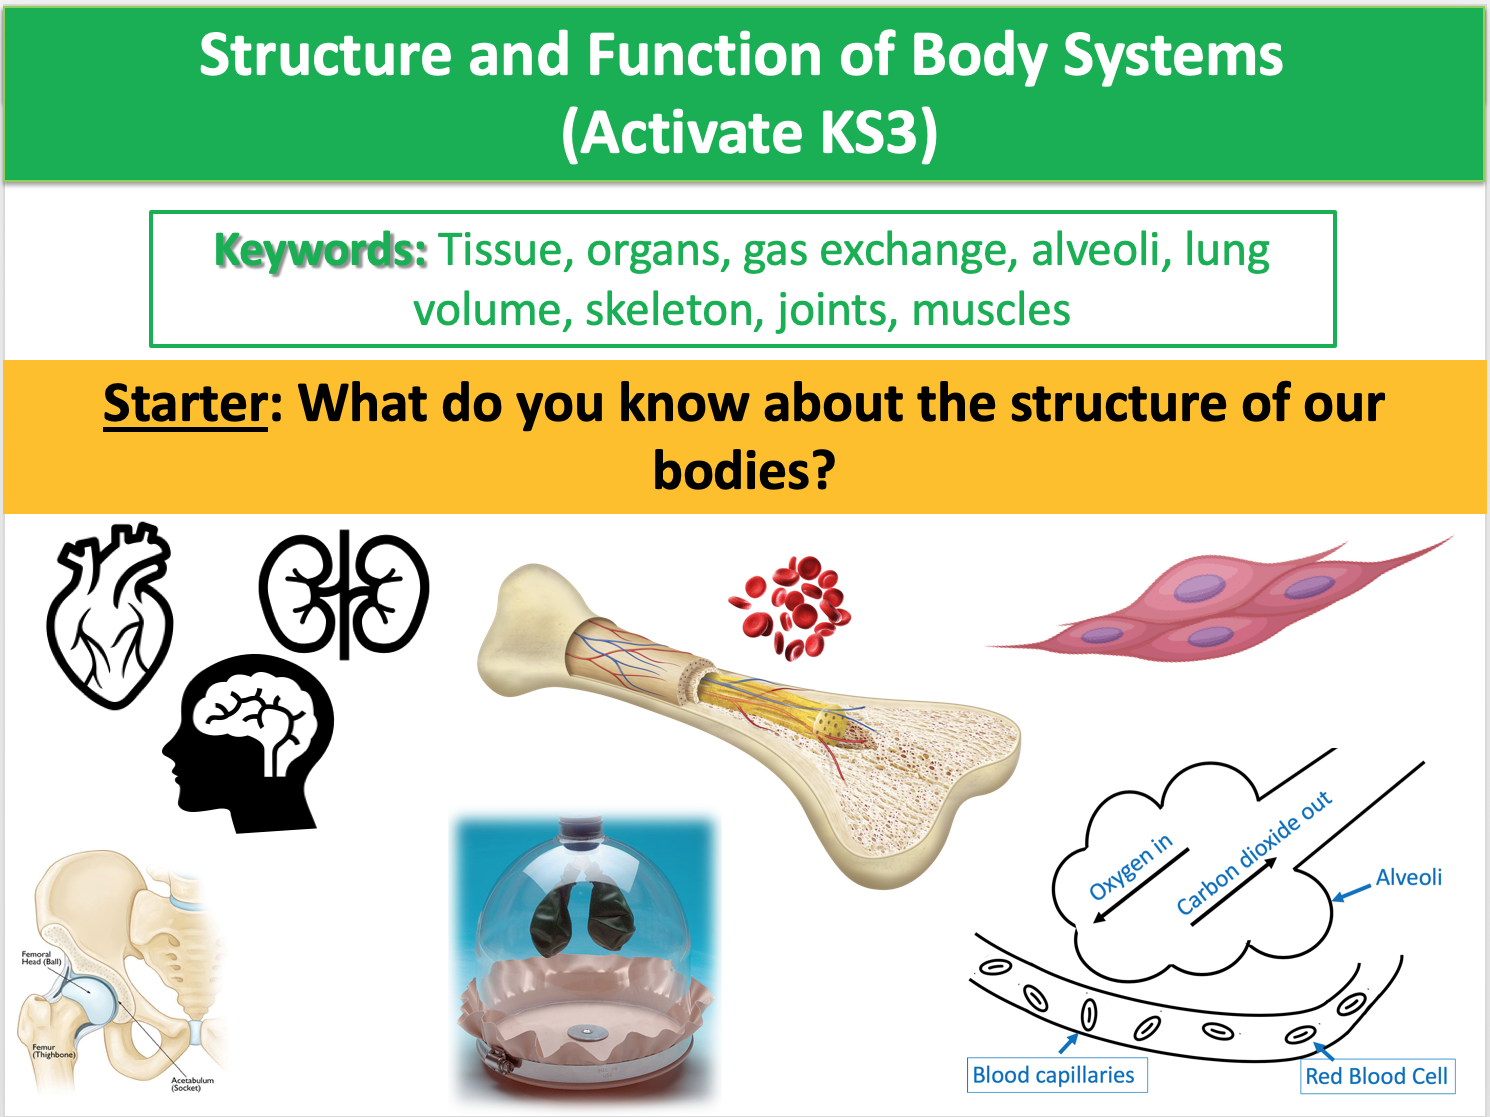 Structure and Function of Body Systems (Activate KS3)